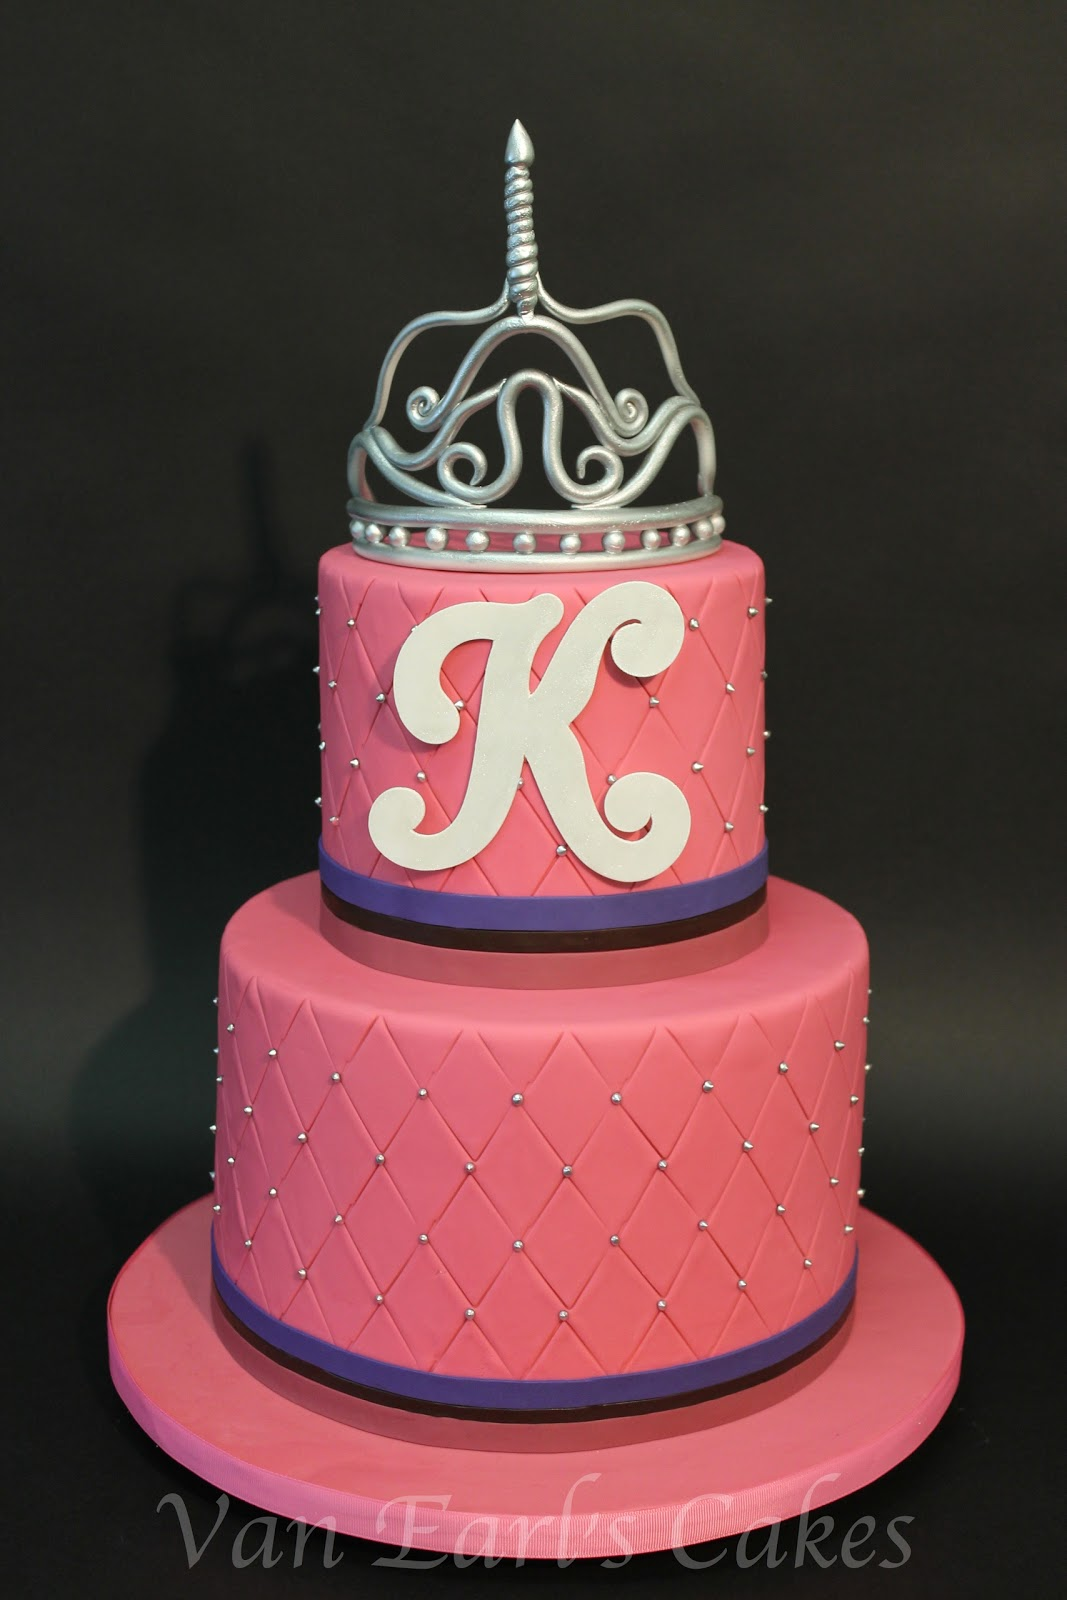 van earl 39 s cakes princess theme baby shower cake